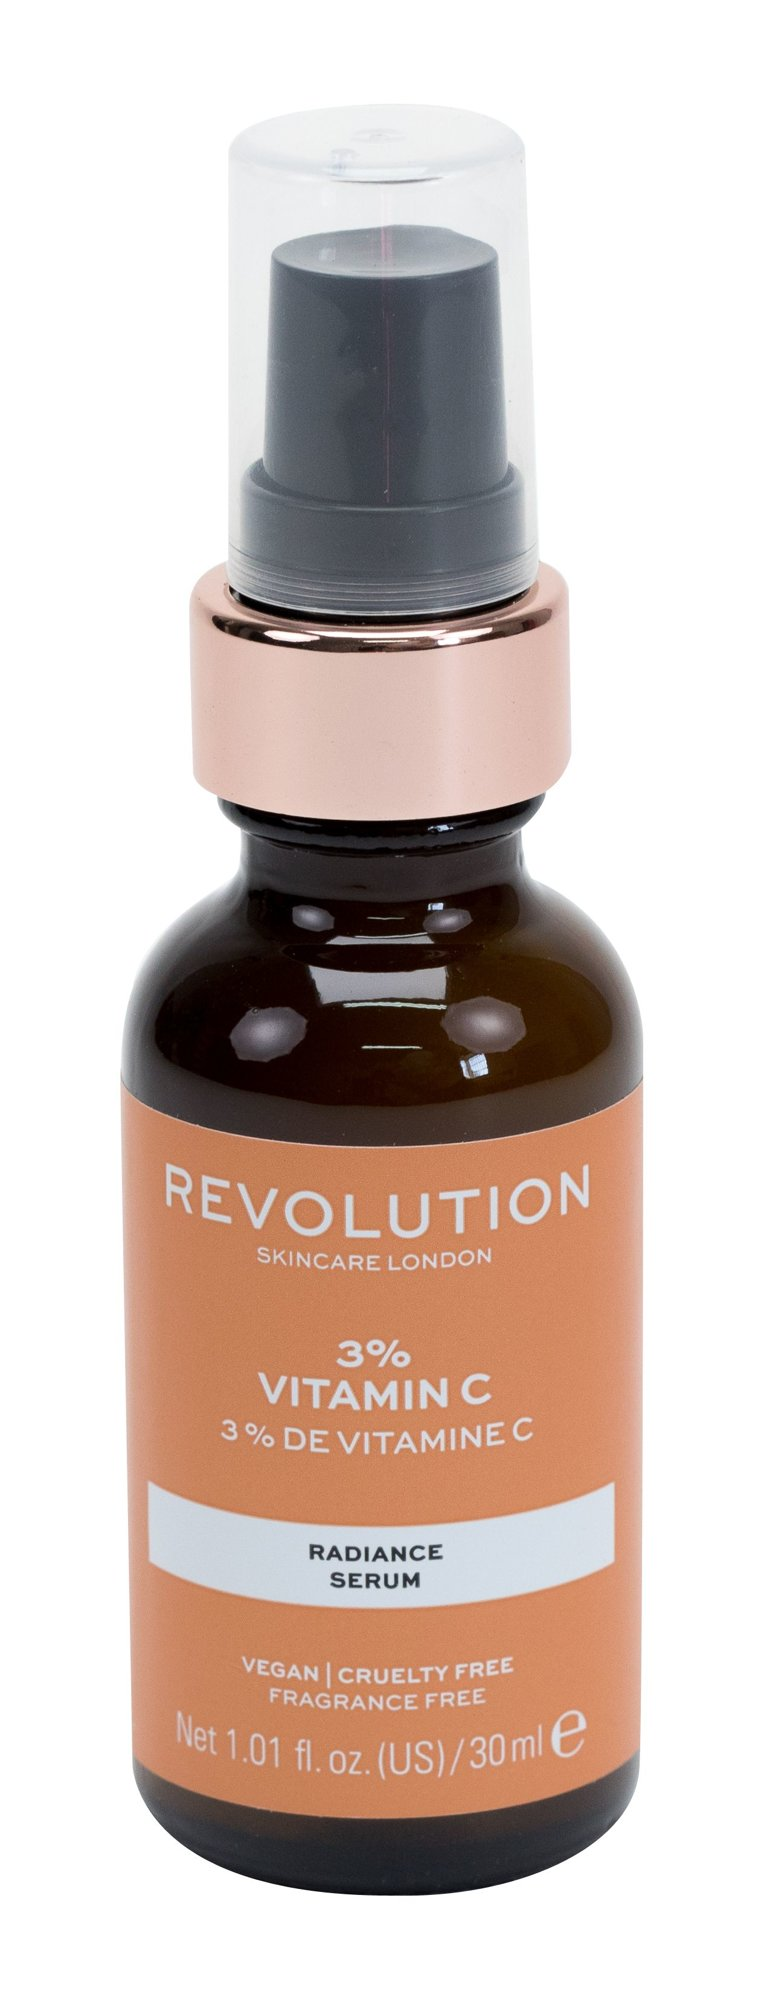 Makeup Revolution London Skincare Radiance Serum Pleťové sérum, W, 30 ml